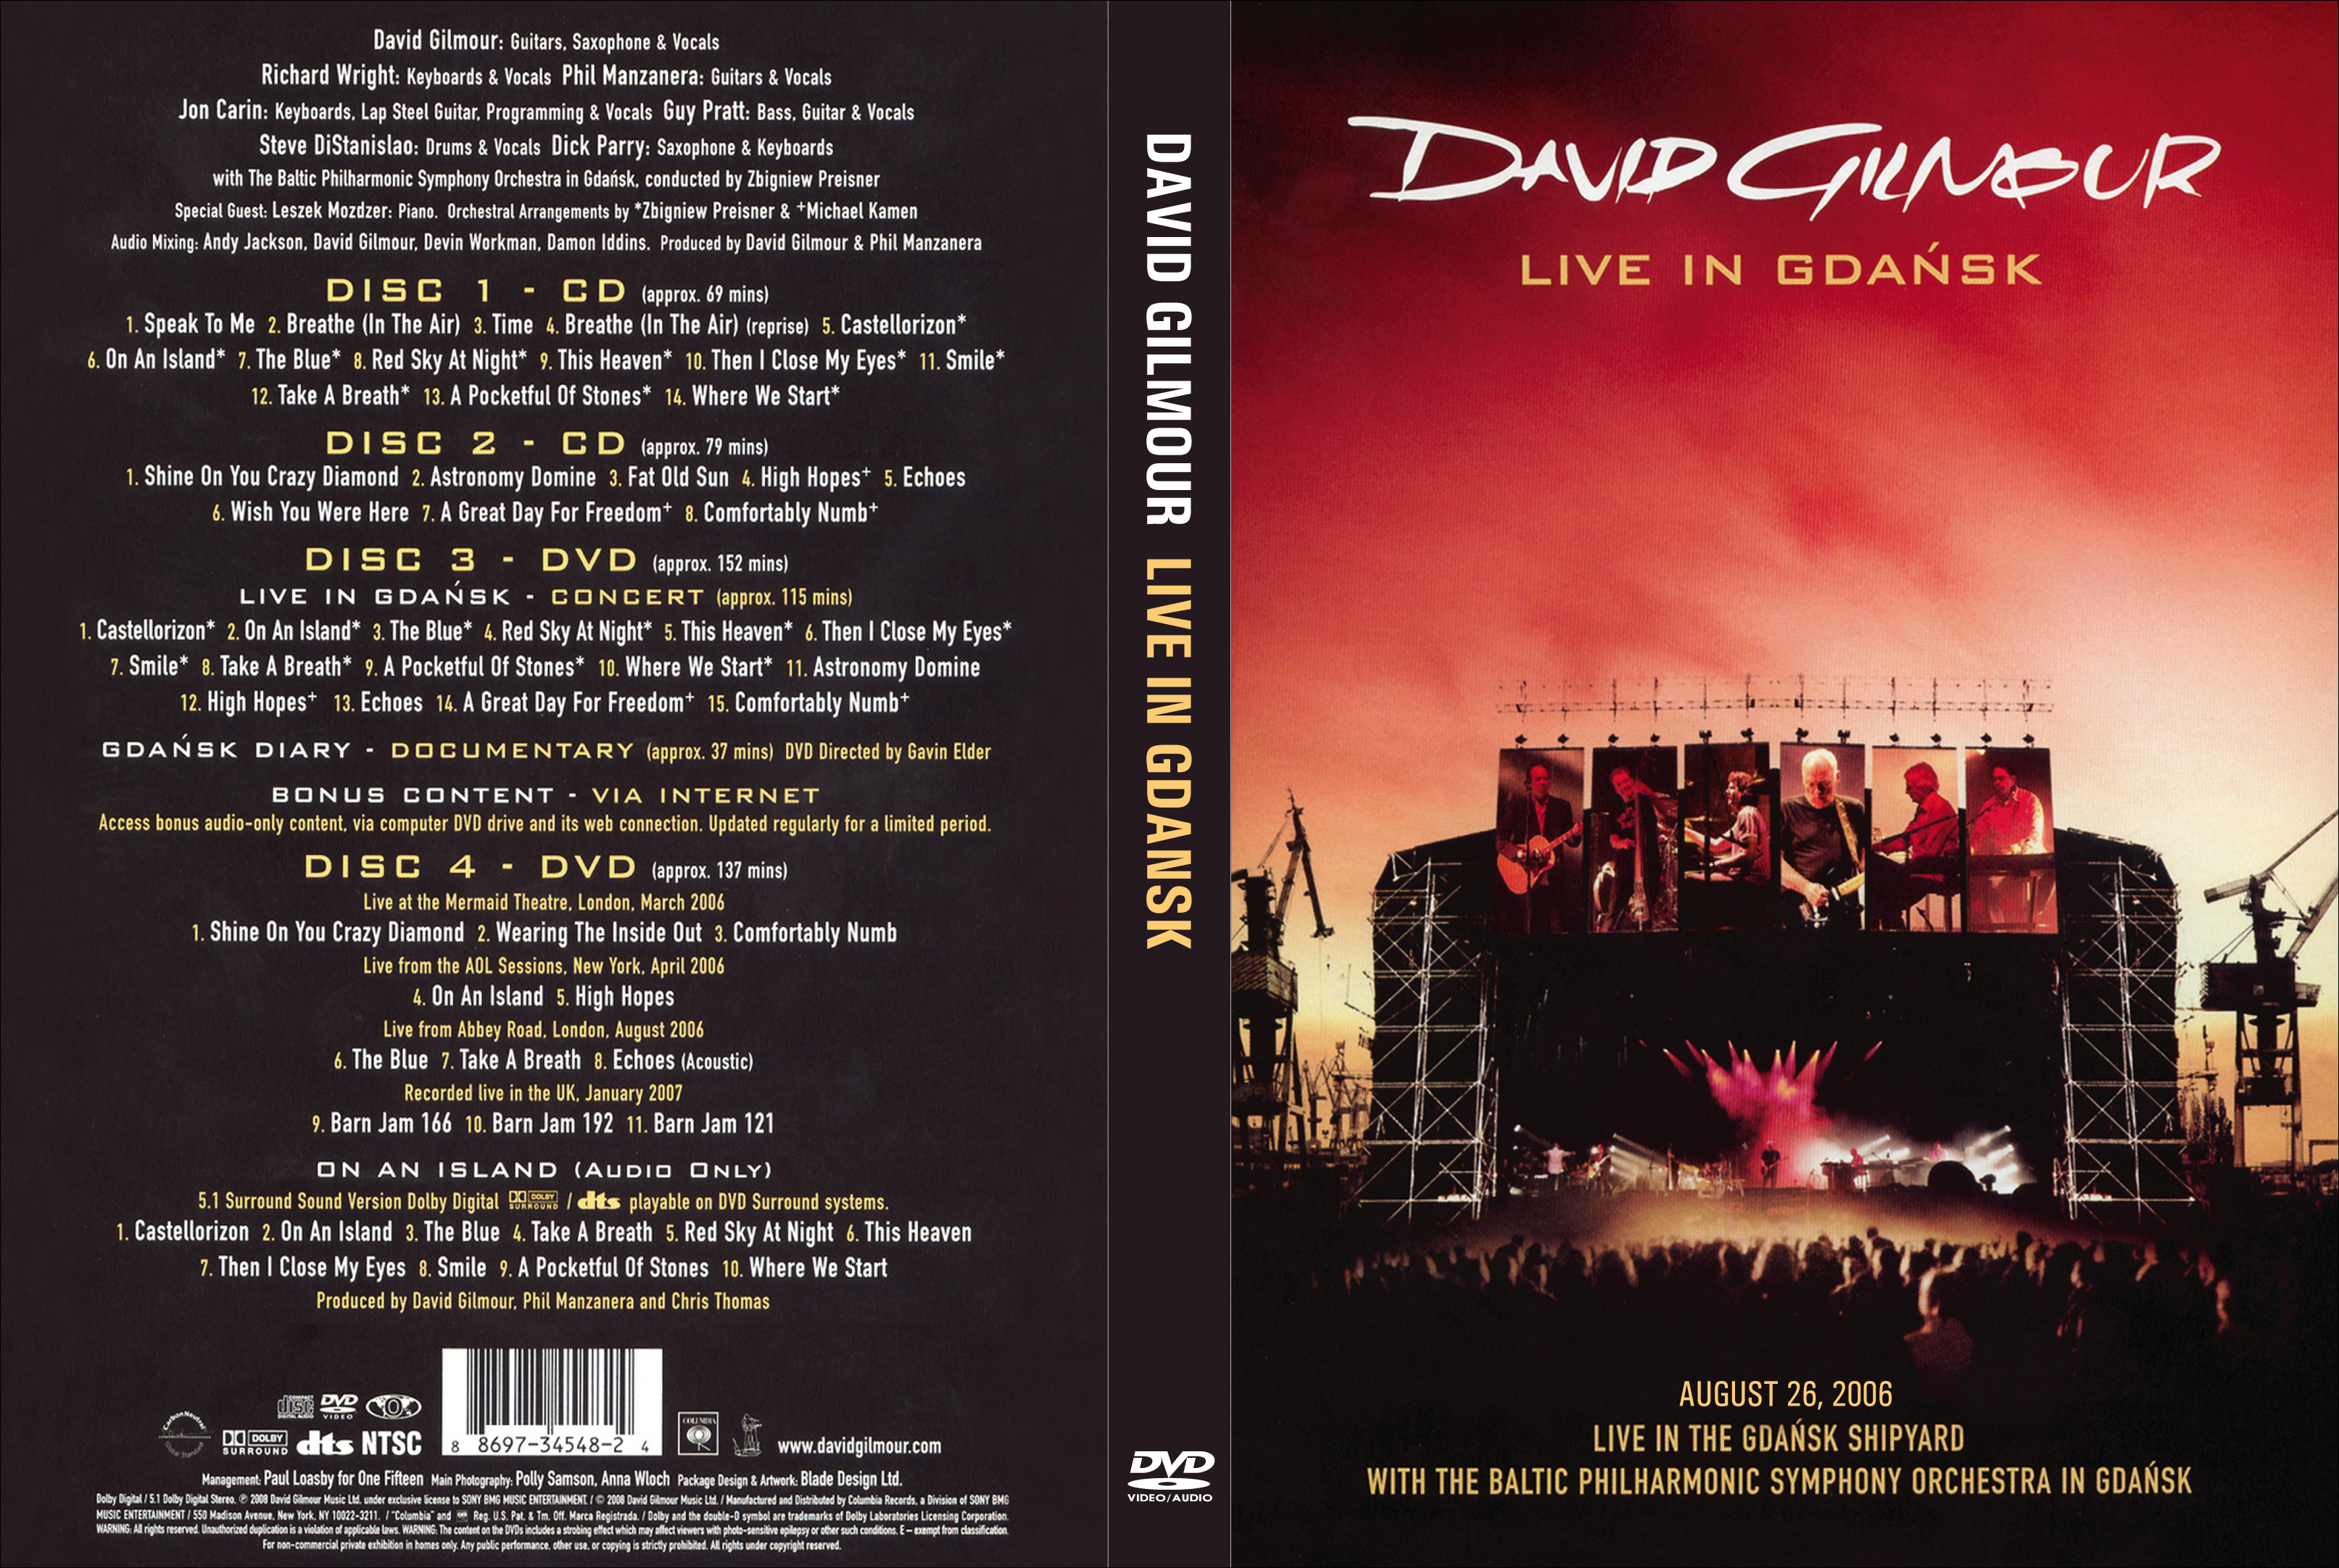 scarica la copertina cd david gilmour live in gdansk eng scarica la cover cd david gilmour. Black Bedroom Furniture Sets. Home Design Ideas